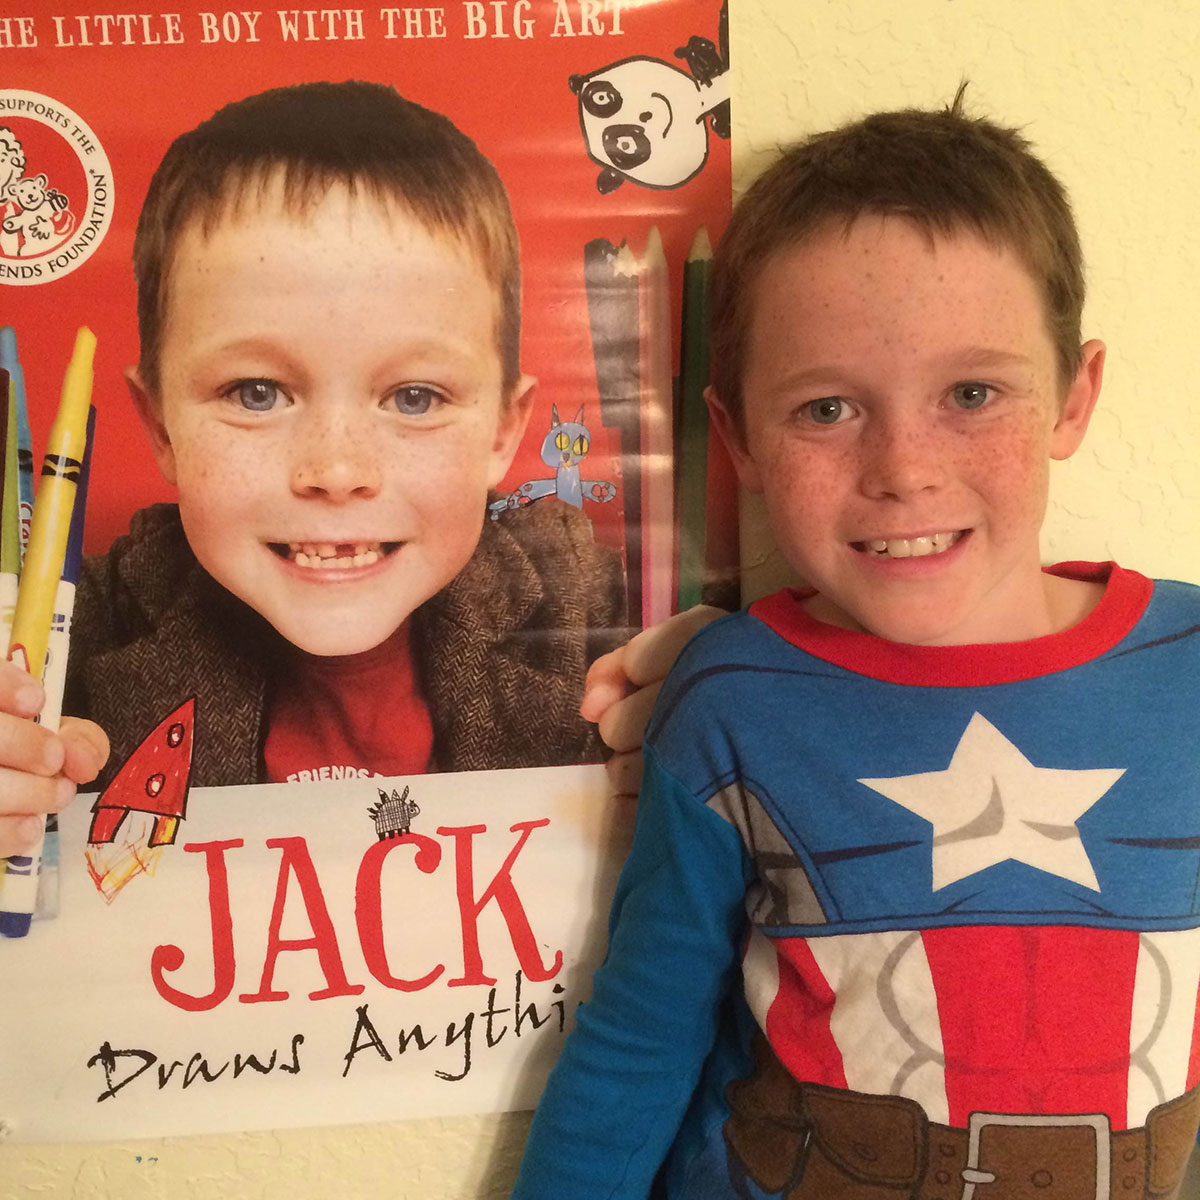 9 year–old Captain America Jack at home in California with his Jack Draws Anything poster (featuring a 6 year–old Jack)! (Photo by ED HENDERSON)